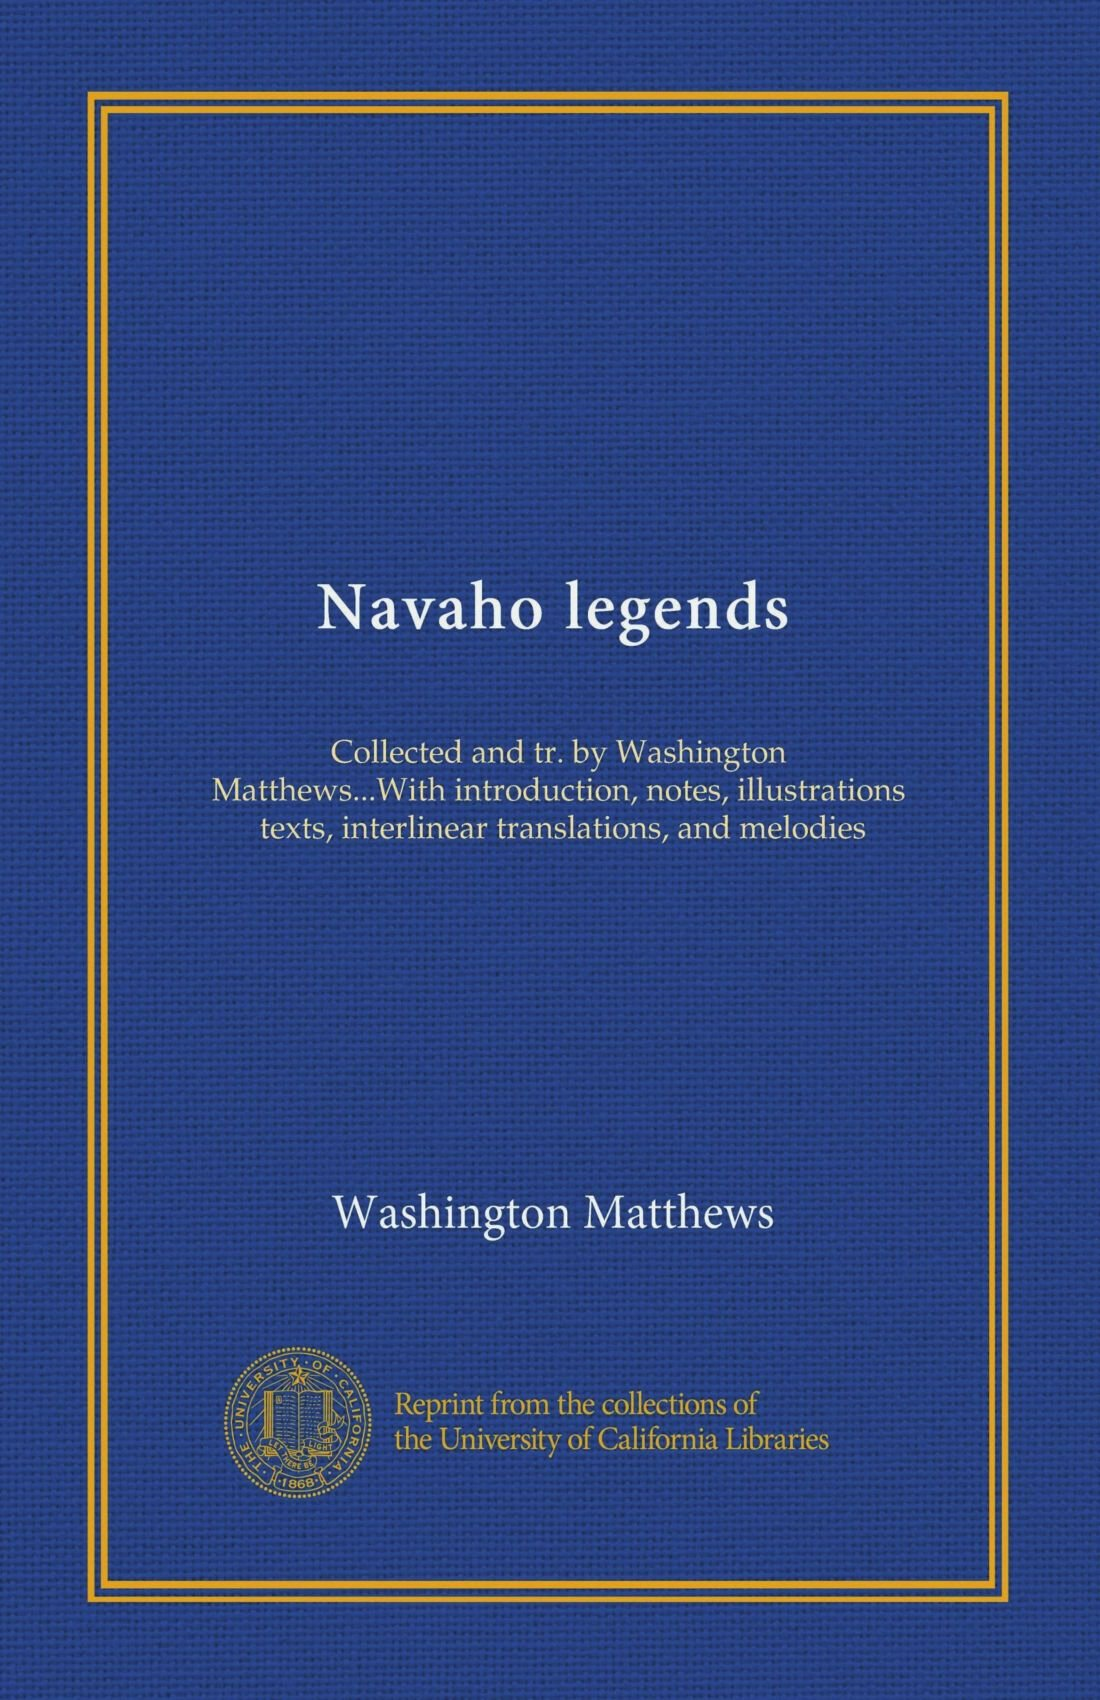 Navaho legends: Collected and tr. by Washington Matthews